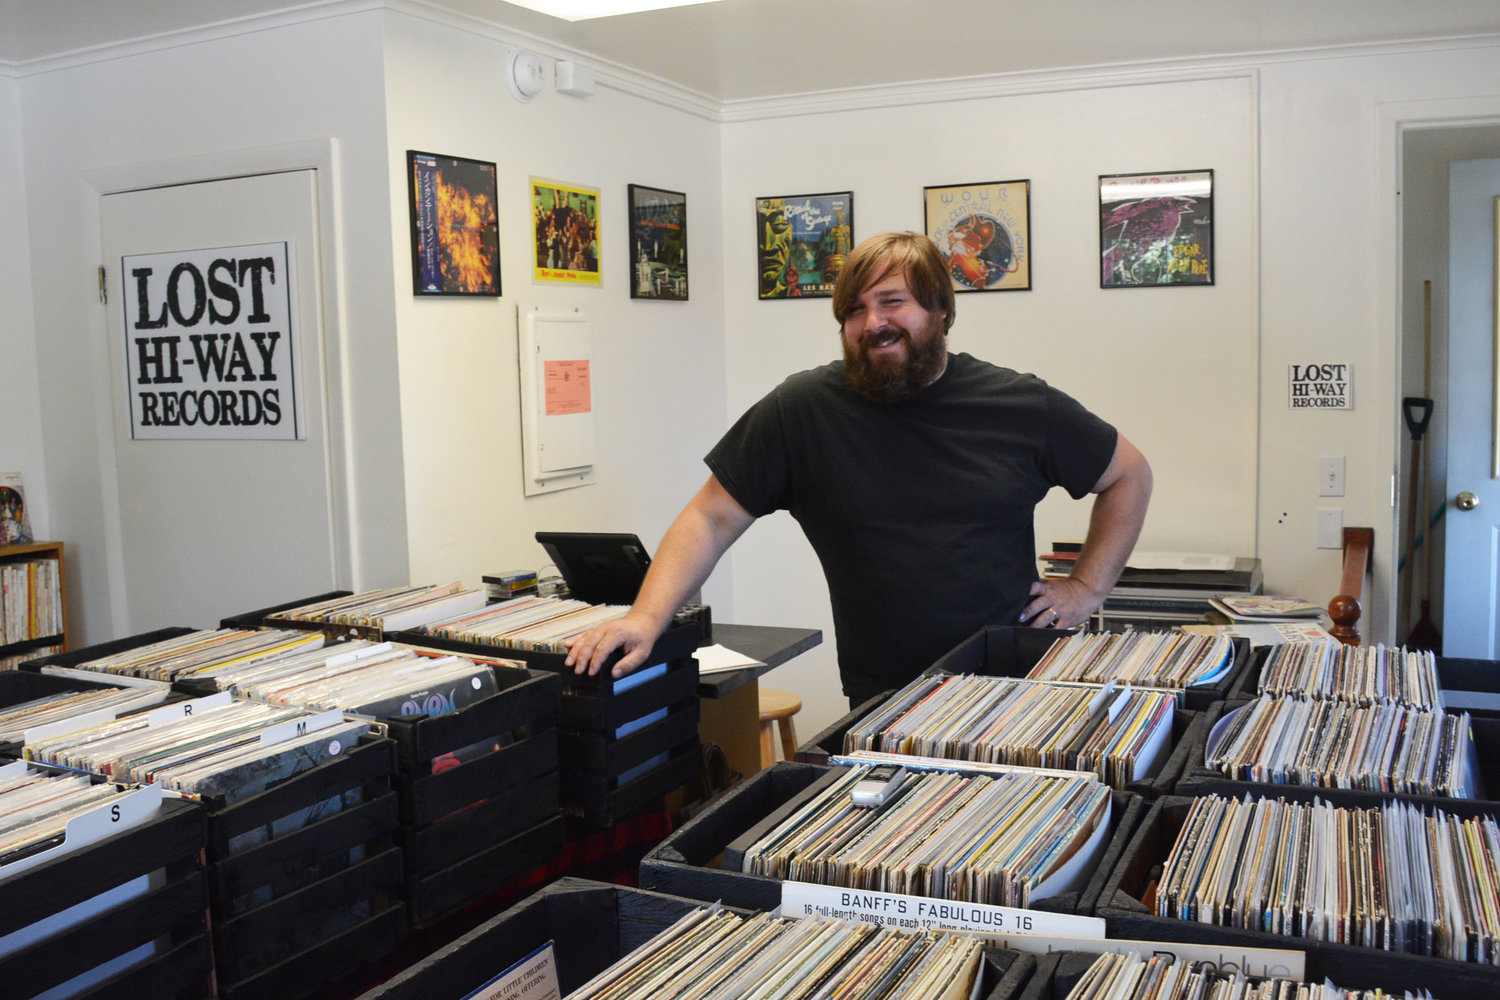 THE VINYL COUNTDOWN — Mike Zombek, along with his wife and business partner (not pictured) Alicia, of Deansboro, opened their vinyl record store in mid-July and stocks only about a fifth of what he owns in the store. Located at 32 College Street, behind the Subway sandwich shop, Zombek hopes to give Clintonians a store to browse and shop in other than just a regular gift shop.